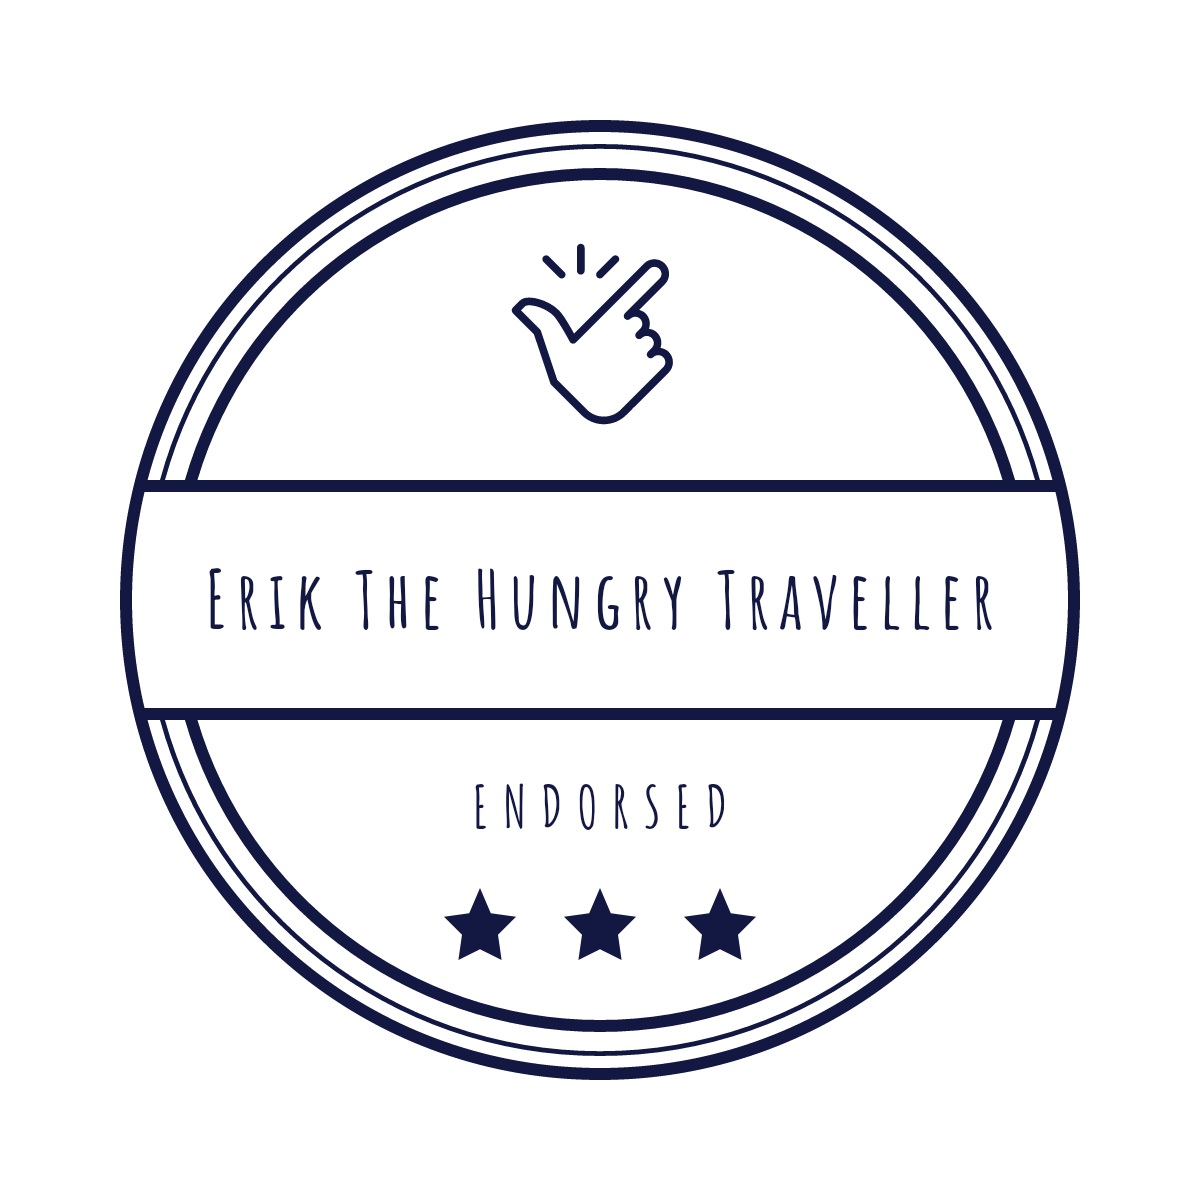 Endorsed by Erik the Hungry Traveller